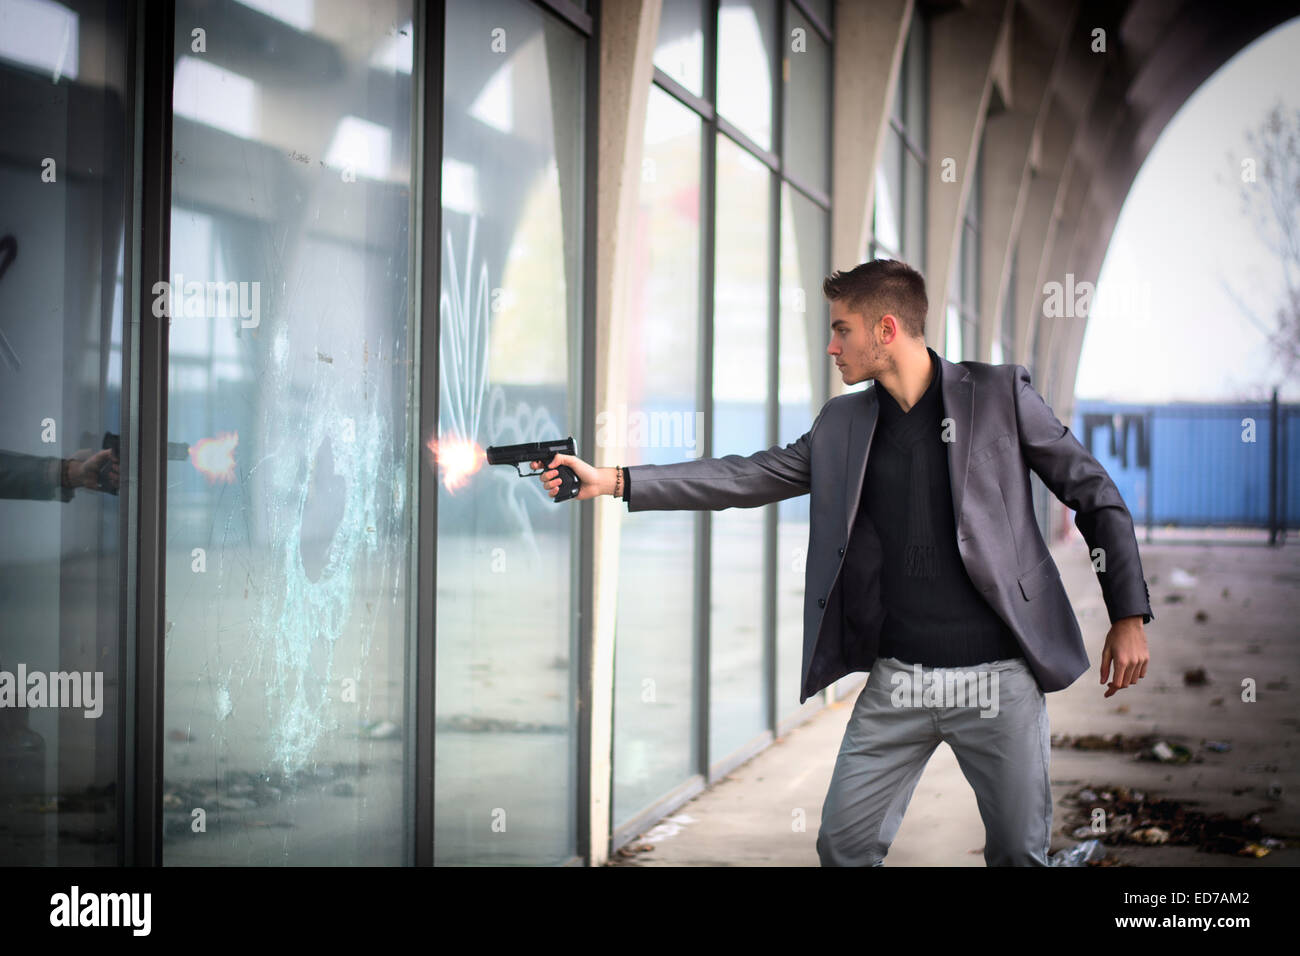 Young detective or policeman or mobster firing a gun to a window glass - Stock Image